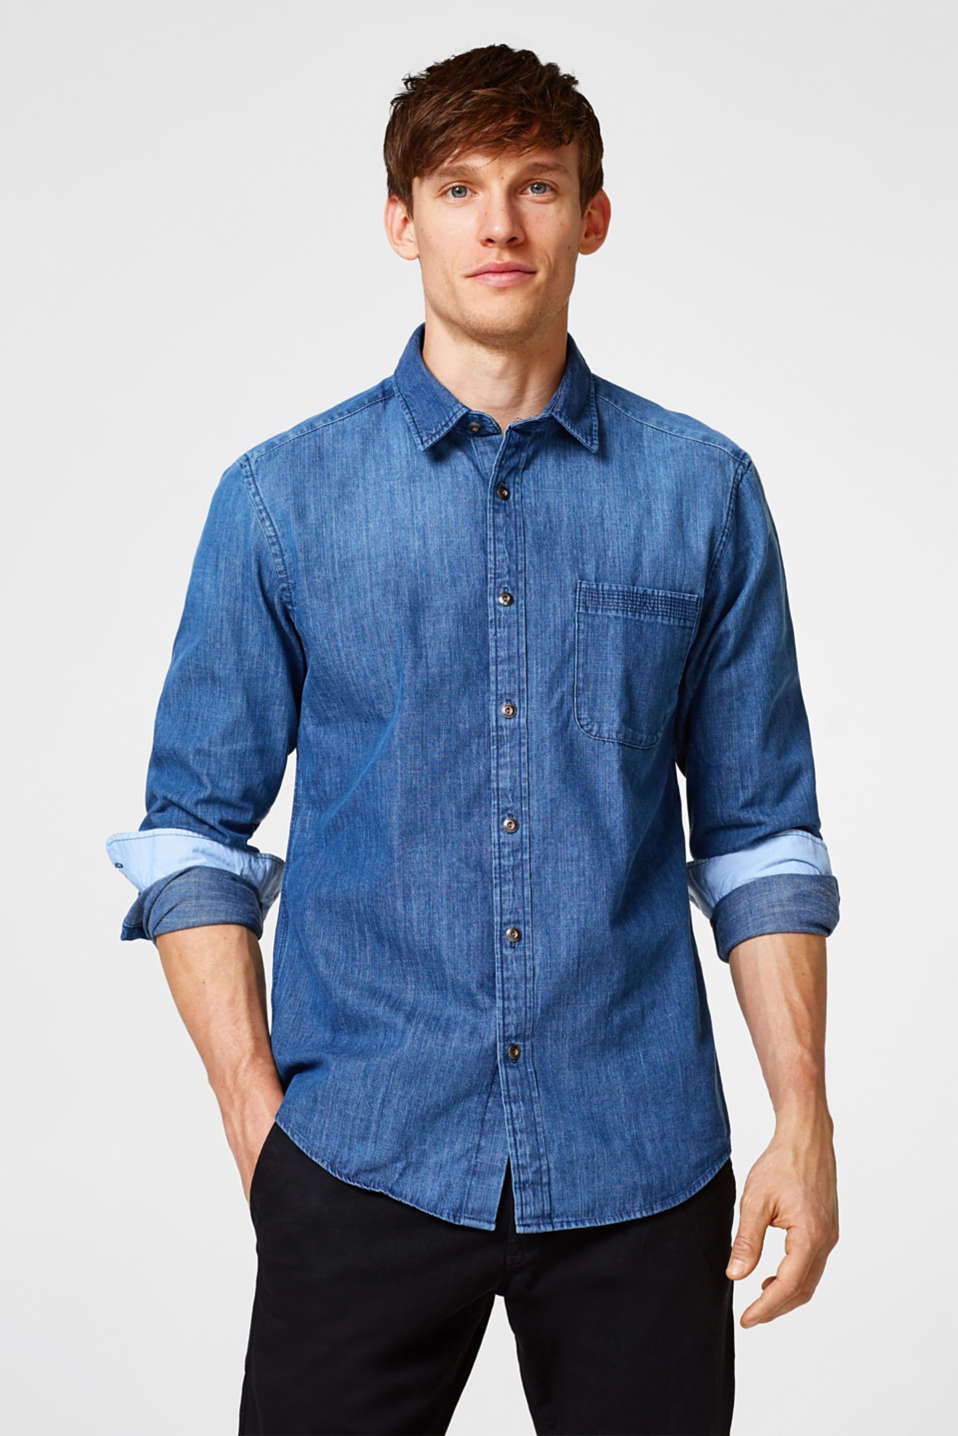 Esprit - Denim shirt in pure cotton